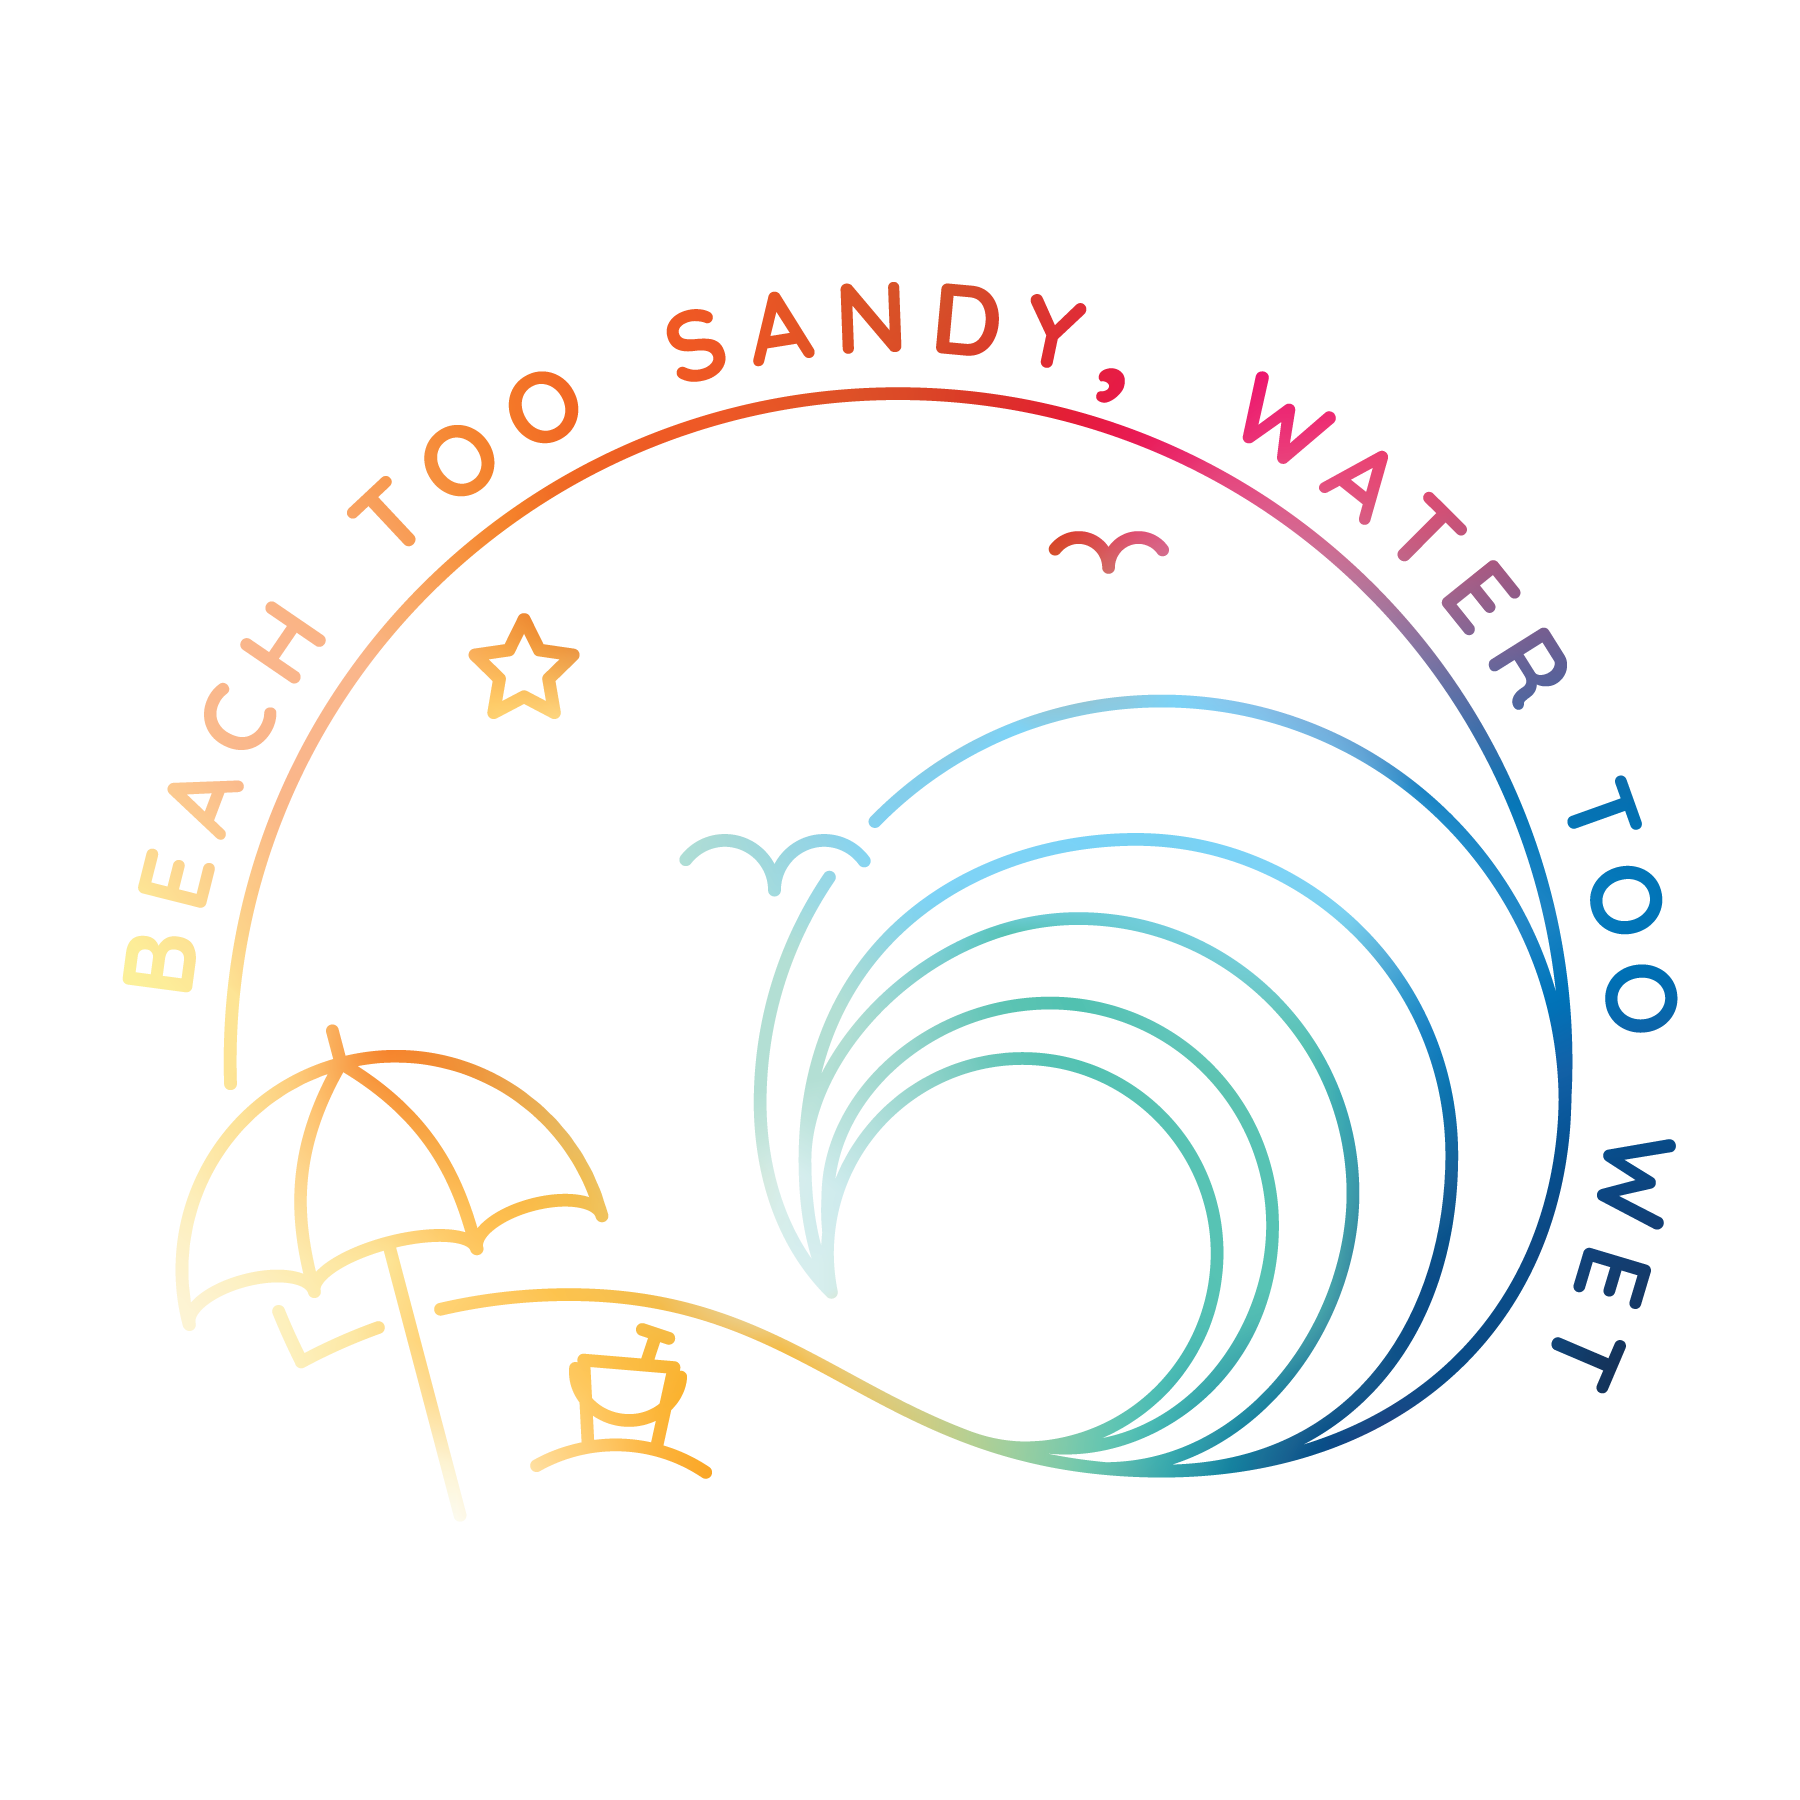 Send us an email! - beachtoosandy@gmail.com